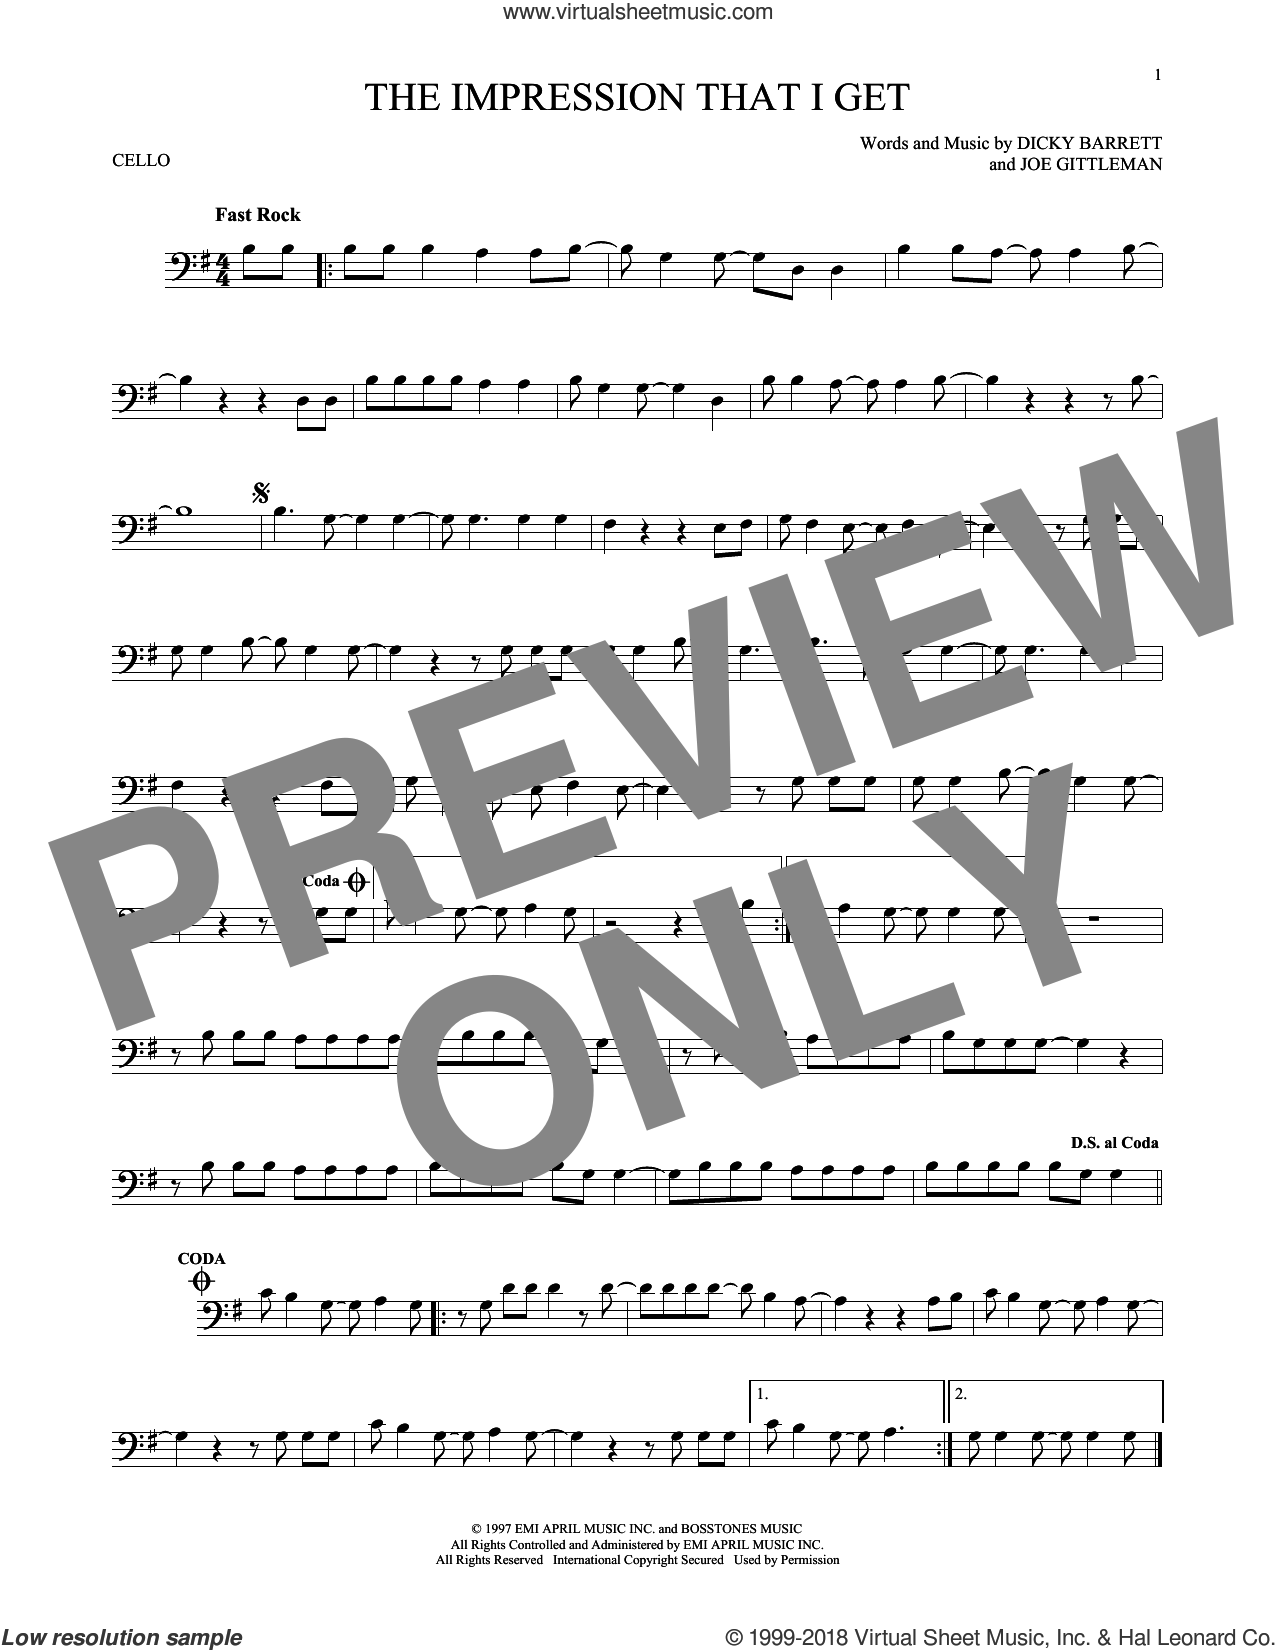 The Impression That I Get sheet music for cello solo by The Mighty Mighty Bosstones, Dicky Barrett and Joe Gittleman, intermediate skill level